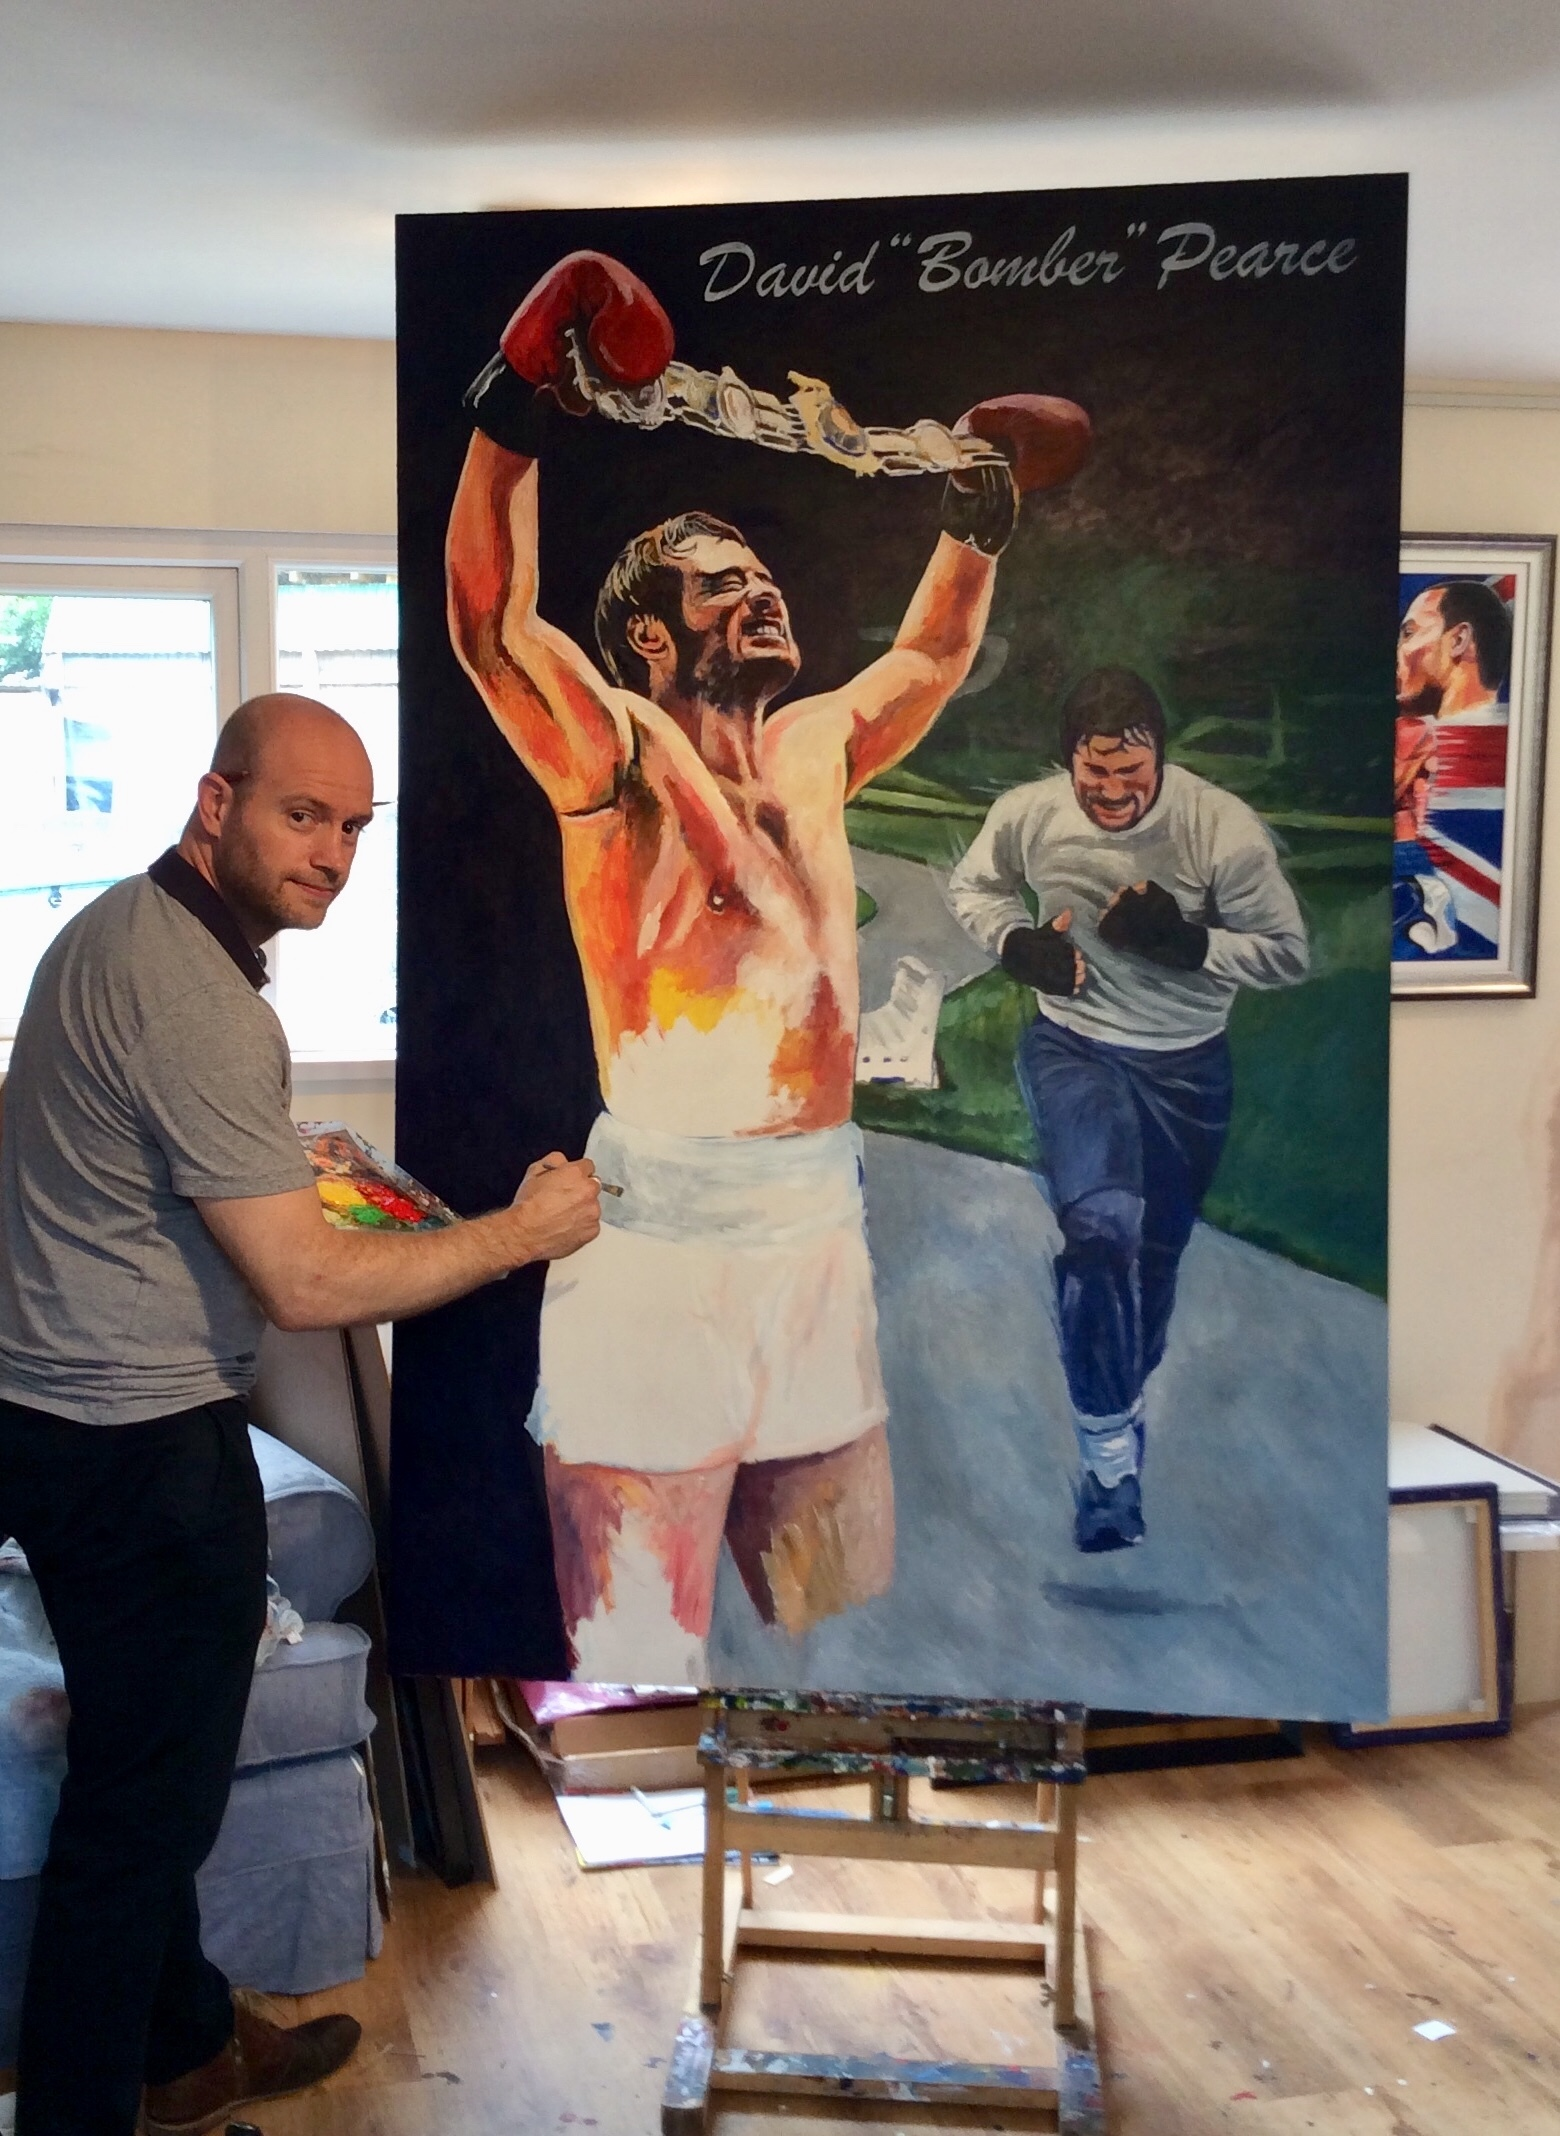 UNVEILING: Artist Pat Killian by the painting of boxer David Pearce which is to be unveiled